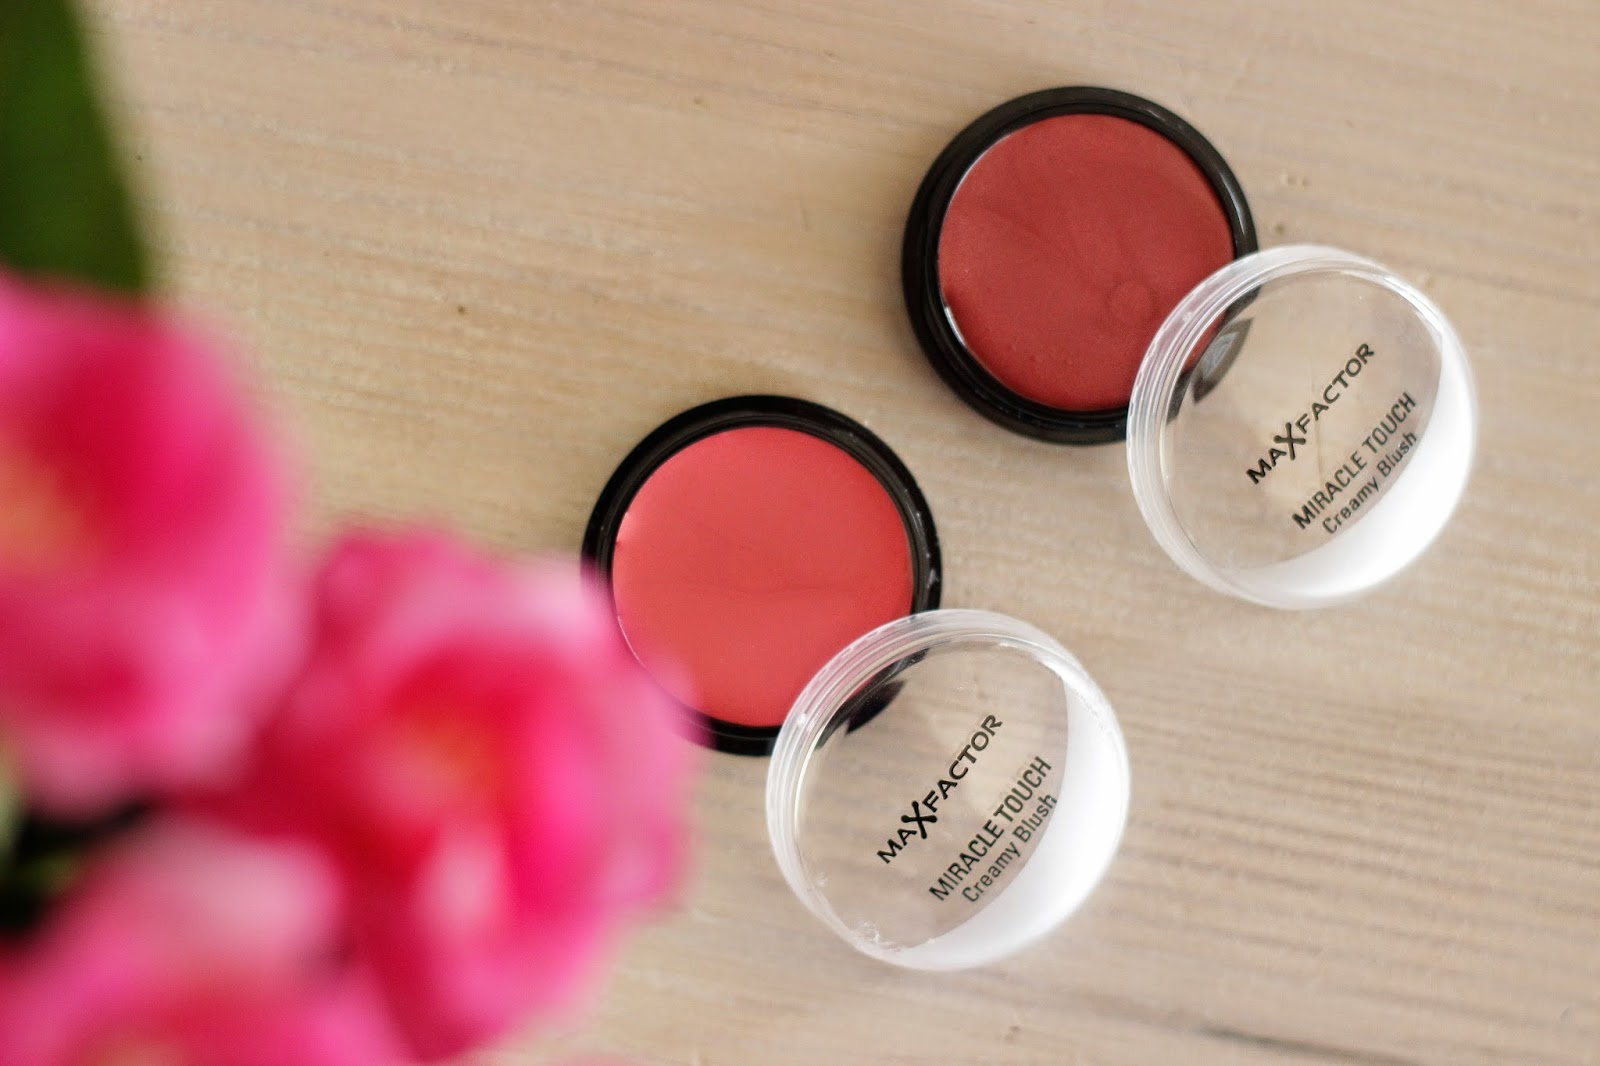 max factor miracle touch creamy blush review, max factor miracle touch creamy blush soft pink soft murano